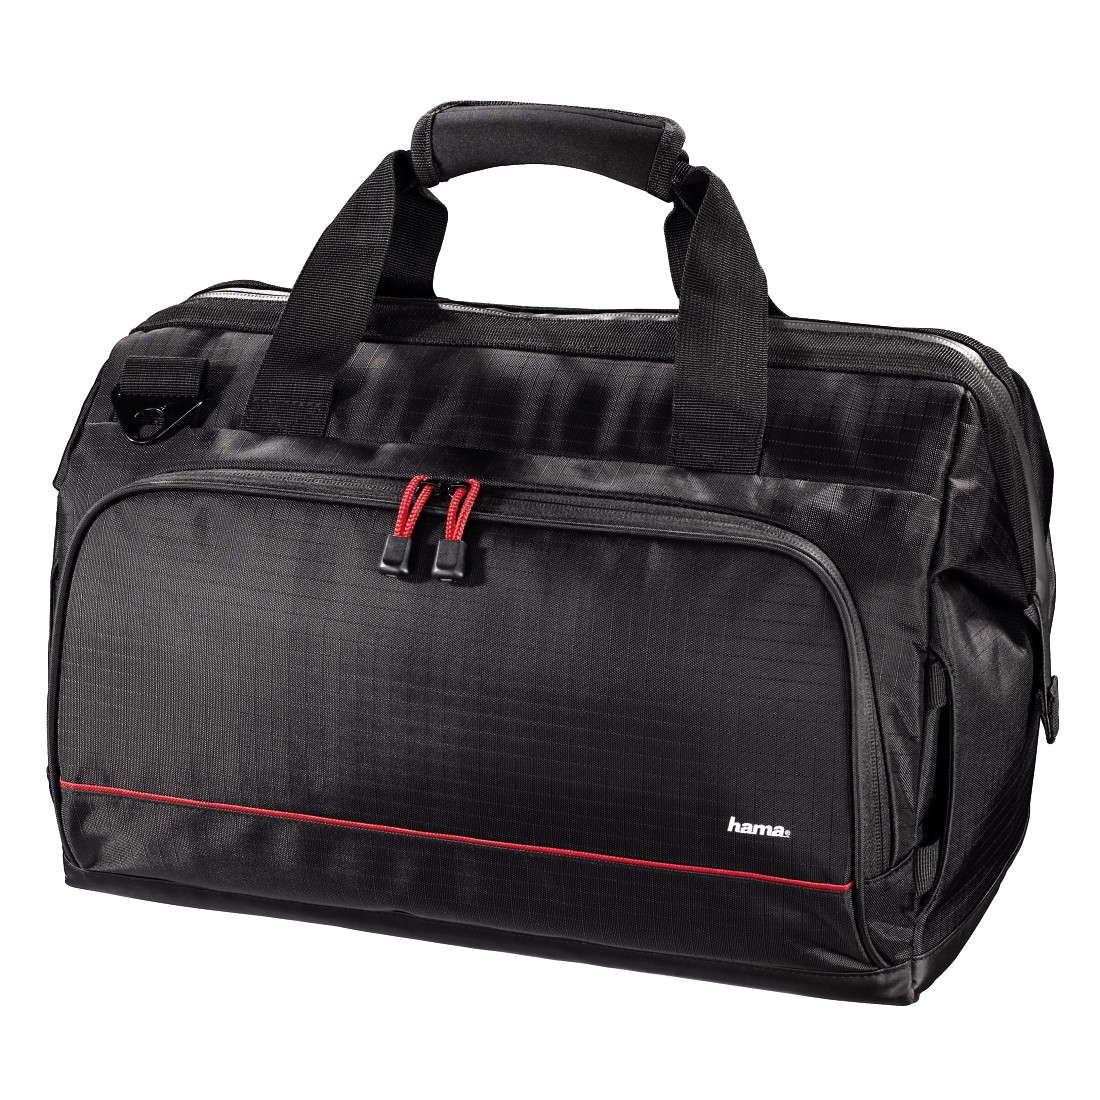 abx High-Res Image - Hama, Multitrans Camera Bag, 200, black